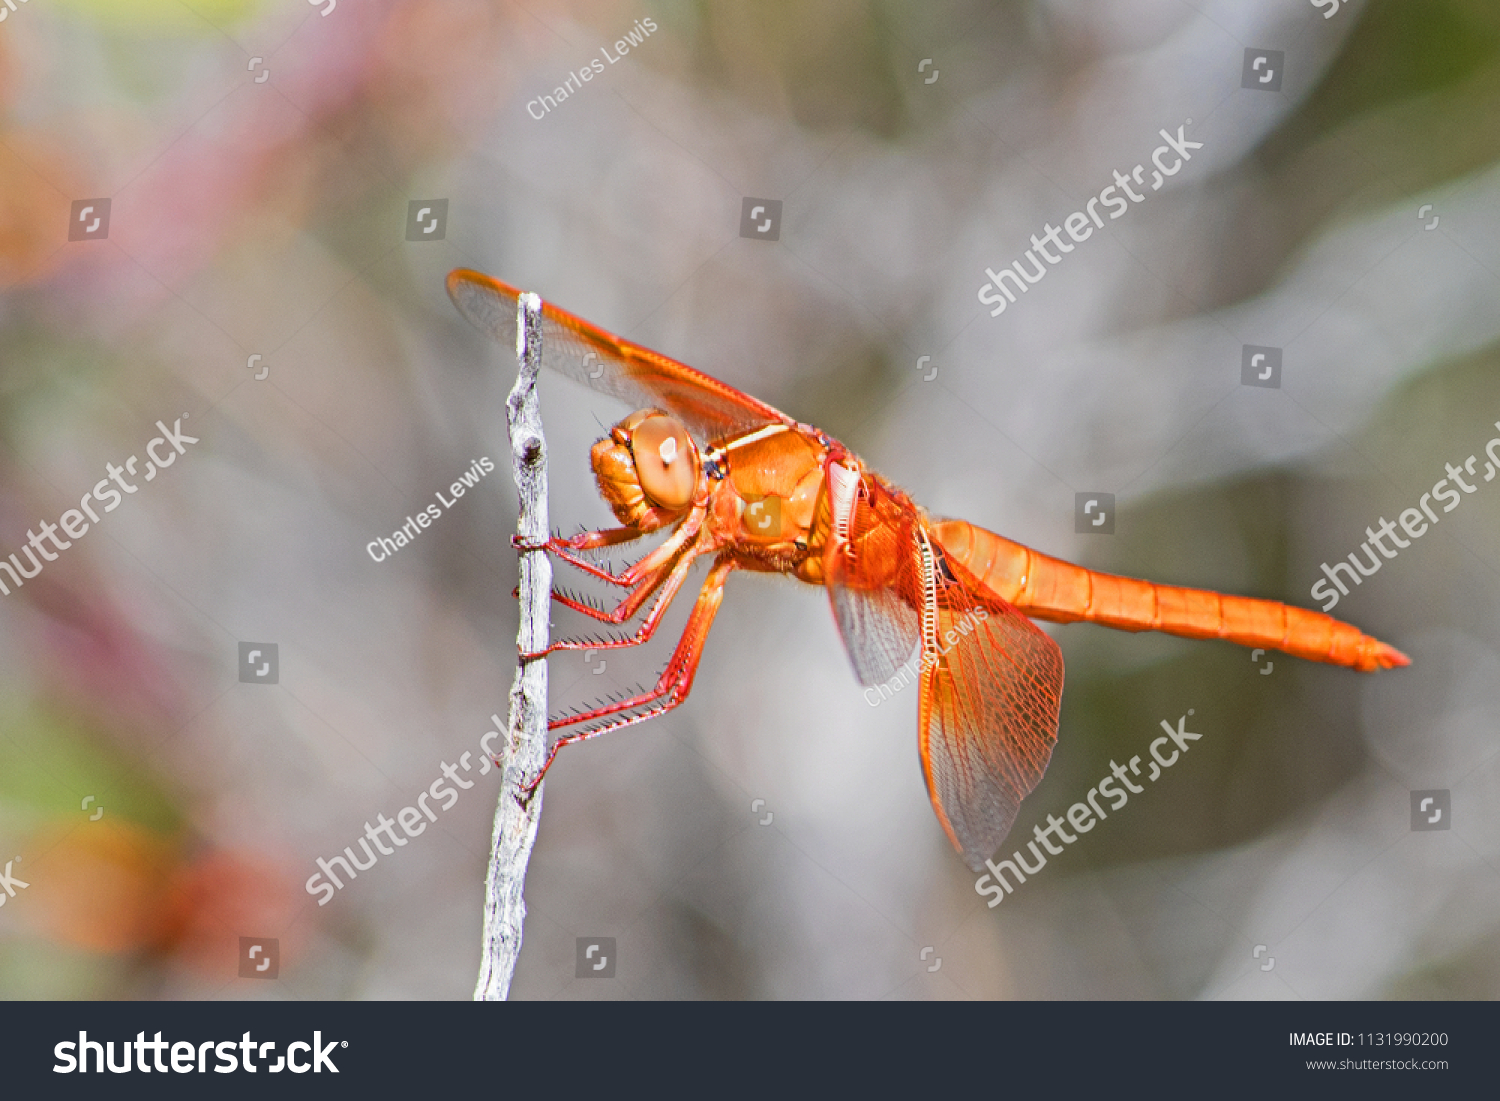 Arizona Red Skimmer DragonFly - Libellula saturata - perched on a twig.